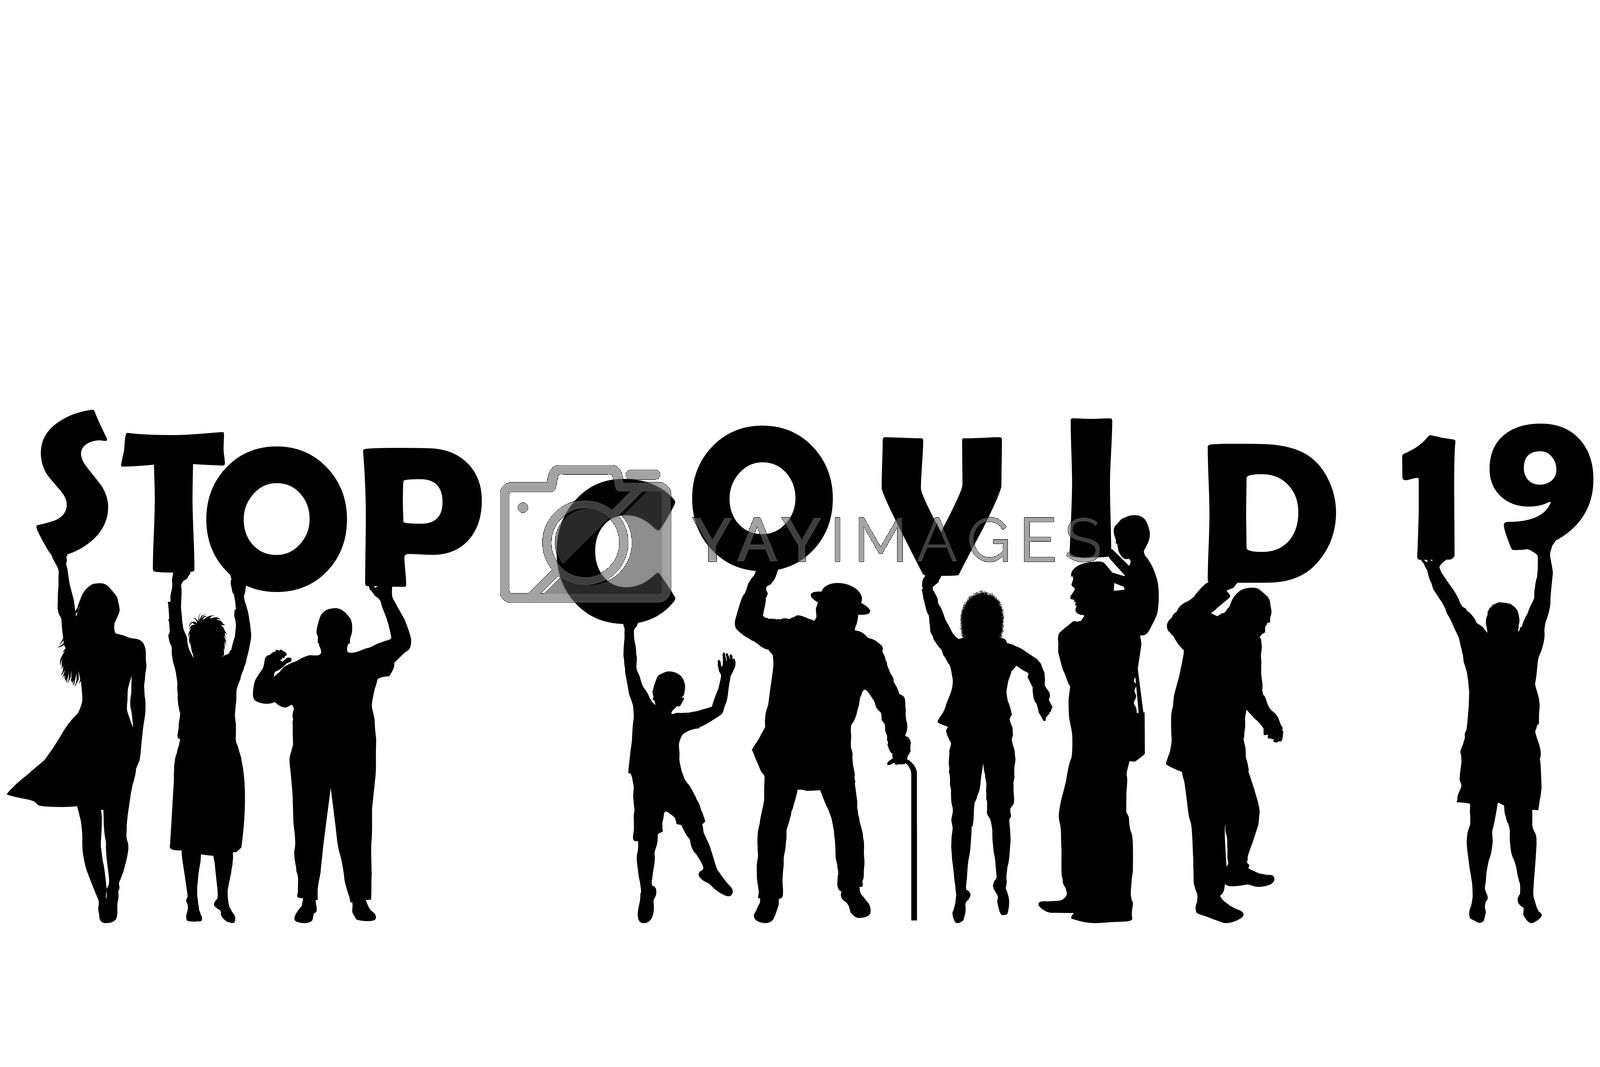 STOP COVID 19 (Coronavirus) with silhouette of women, men and children holding letters